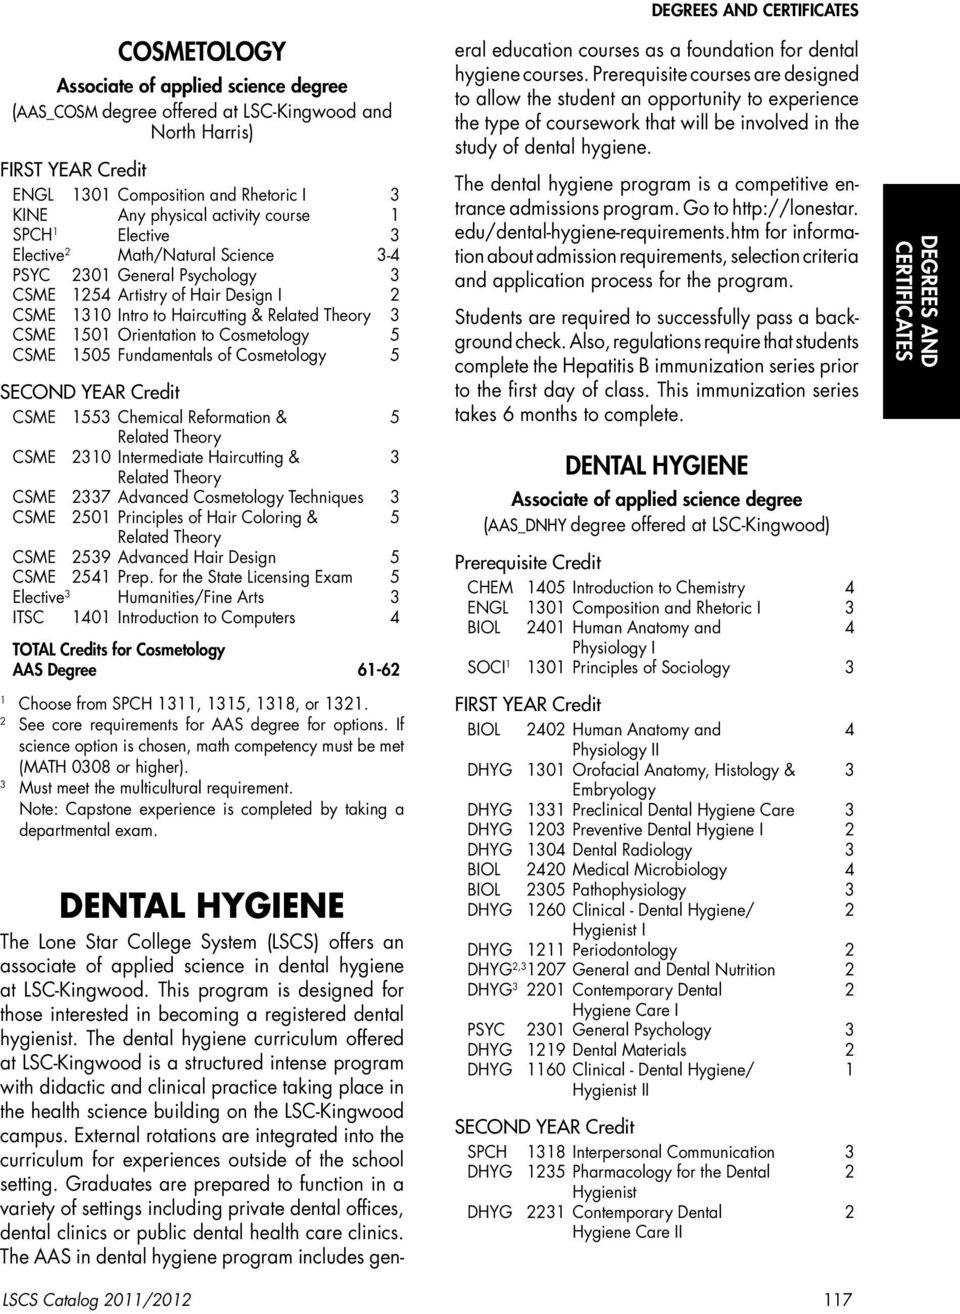 Cosmetology 5 CSME 55 Chemical Reformation & 5 Related Theory CSME 0 Intermediate Haircutting & Related Theory CSME 7 Advanced Cosmetology Techniques CSME 50 Principles of Hair Coloring & 5 Related